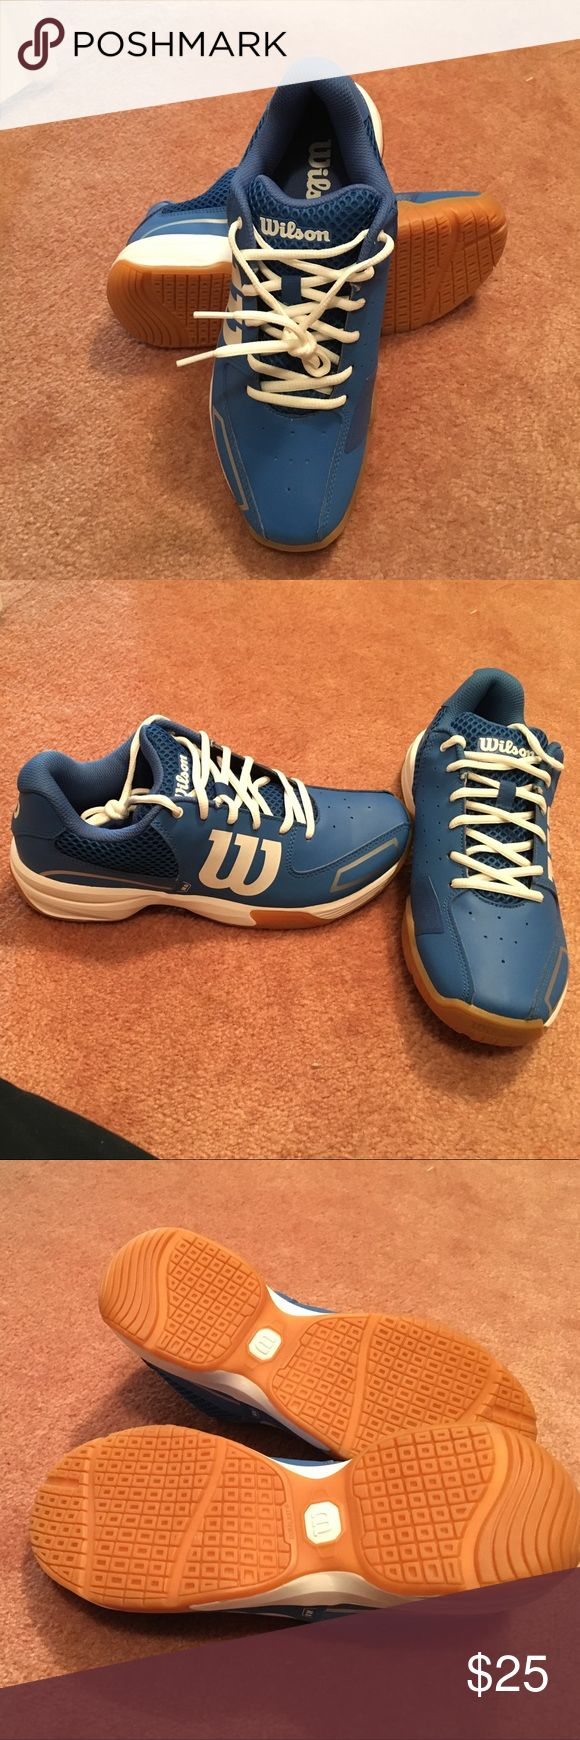 Stylish, Hip, NEVER WORN WILSON TENNIS SHOES. Royal blue tennis Shoes. Kick around town in them or wear for gym and racquet sports. Quality and Reputable Company Wilson women's shoes. Wilsons Leather Shoes Athletic Shoes